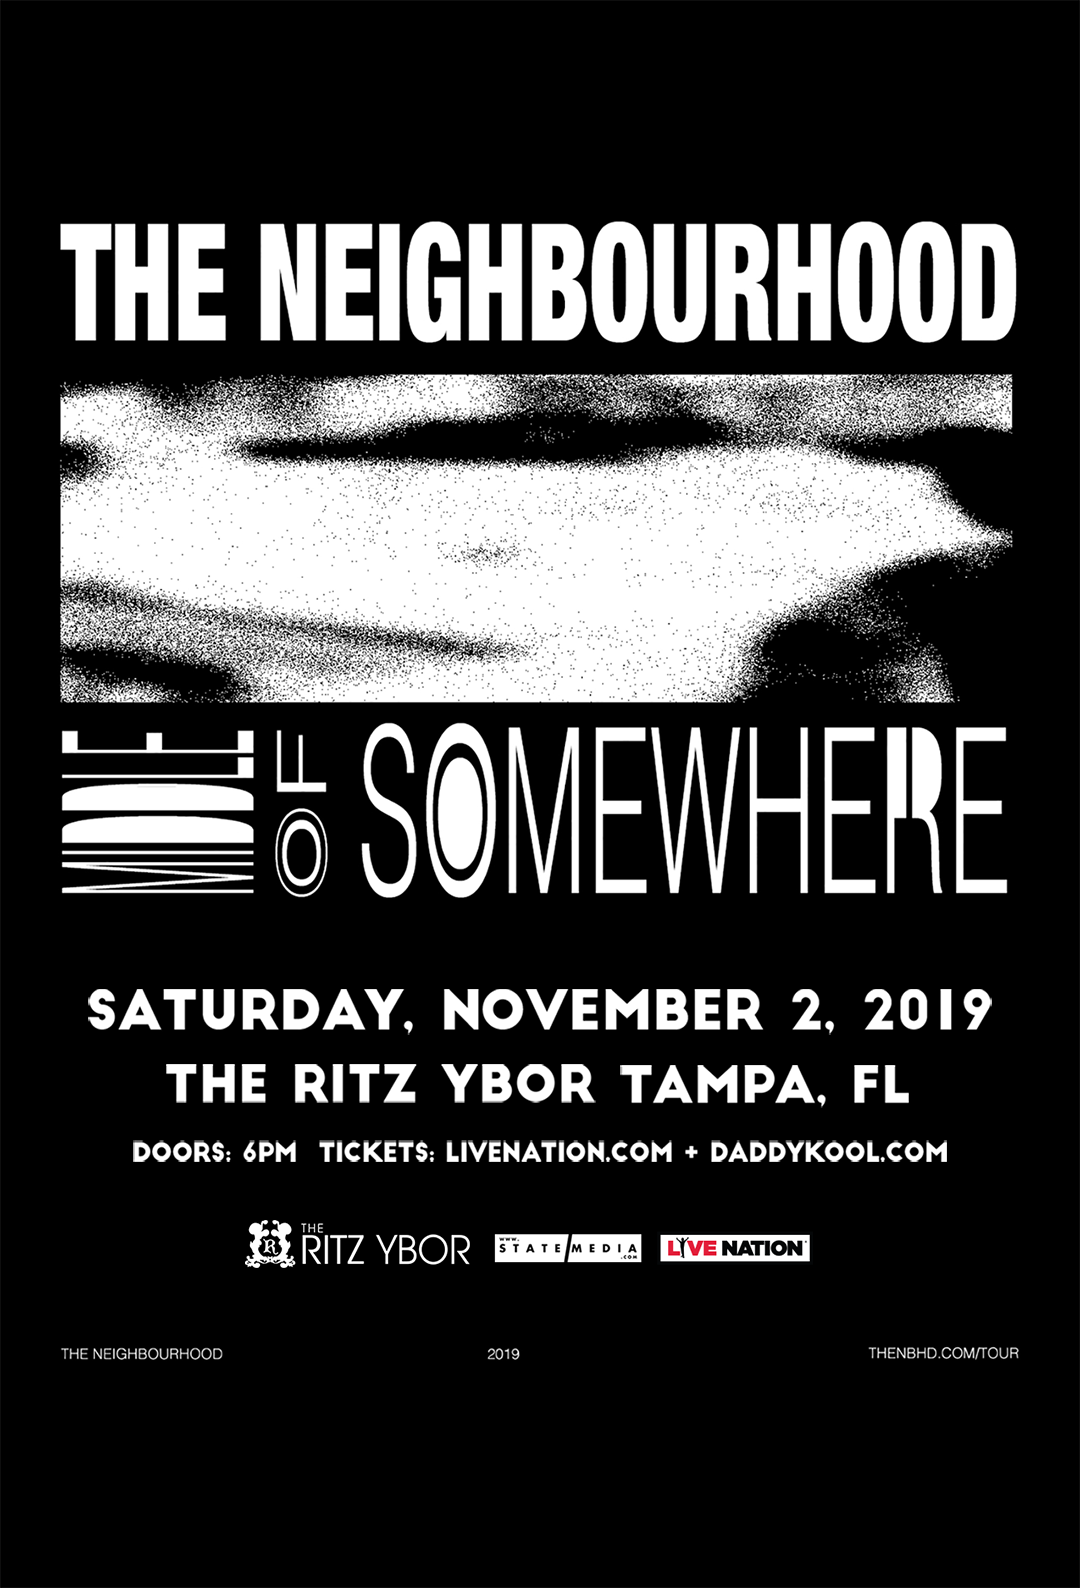 The Neighbourhood at The RITZ Ybor – 11/2/2019